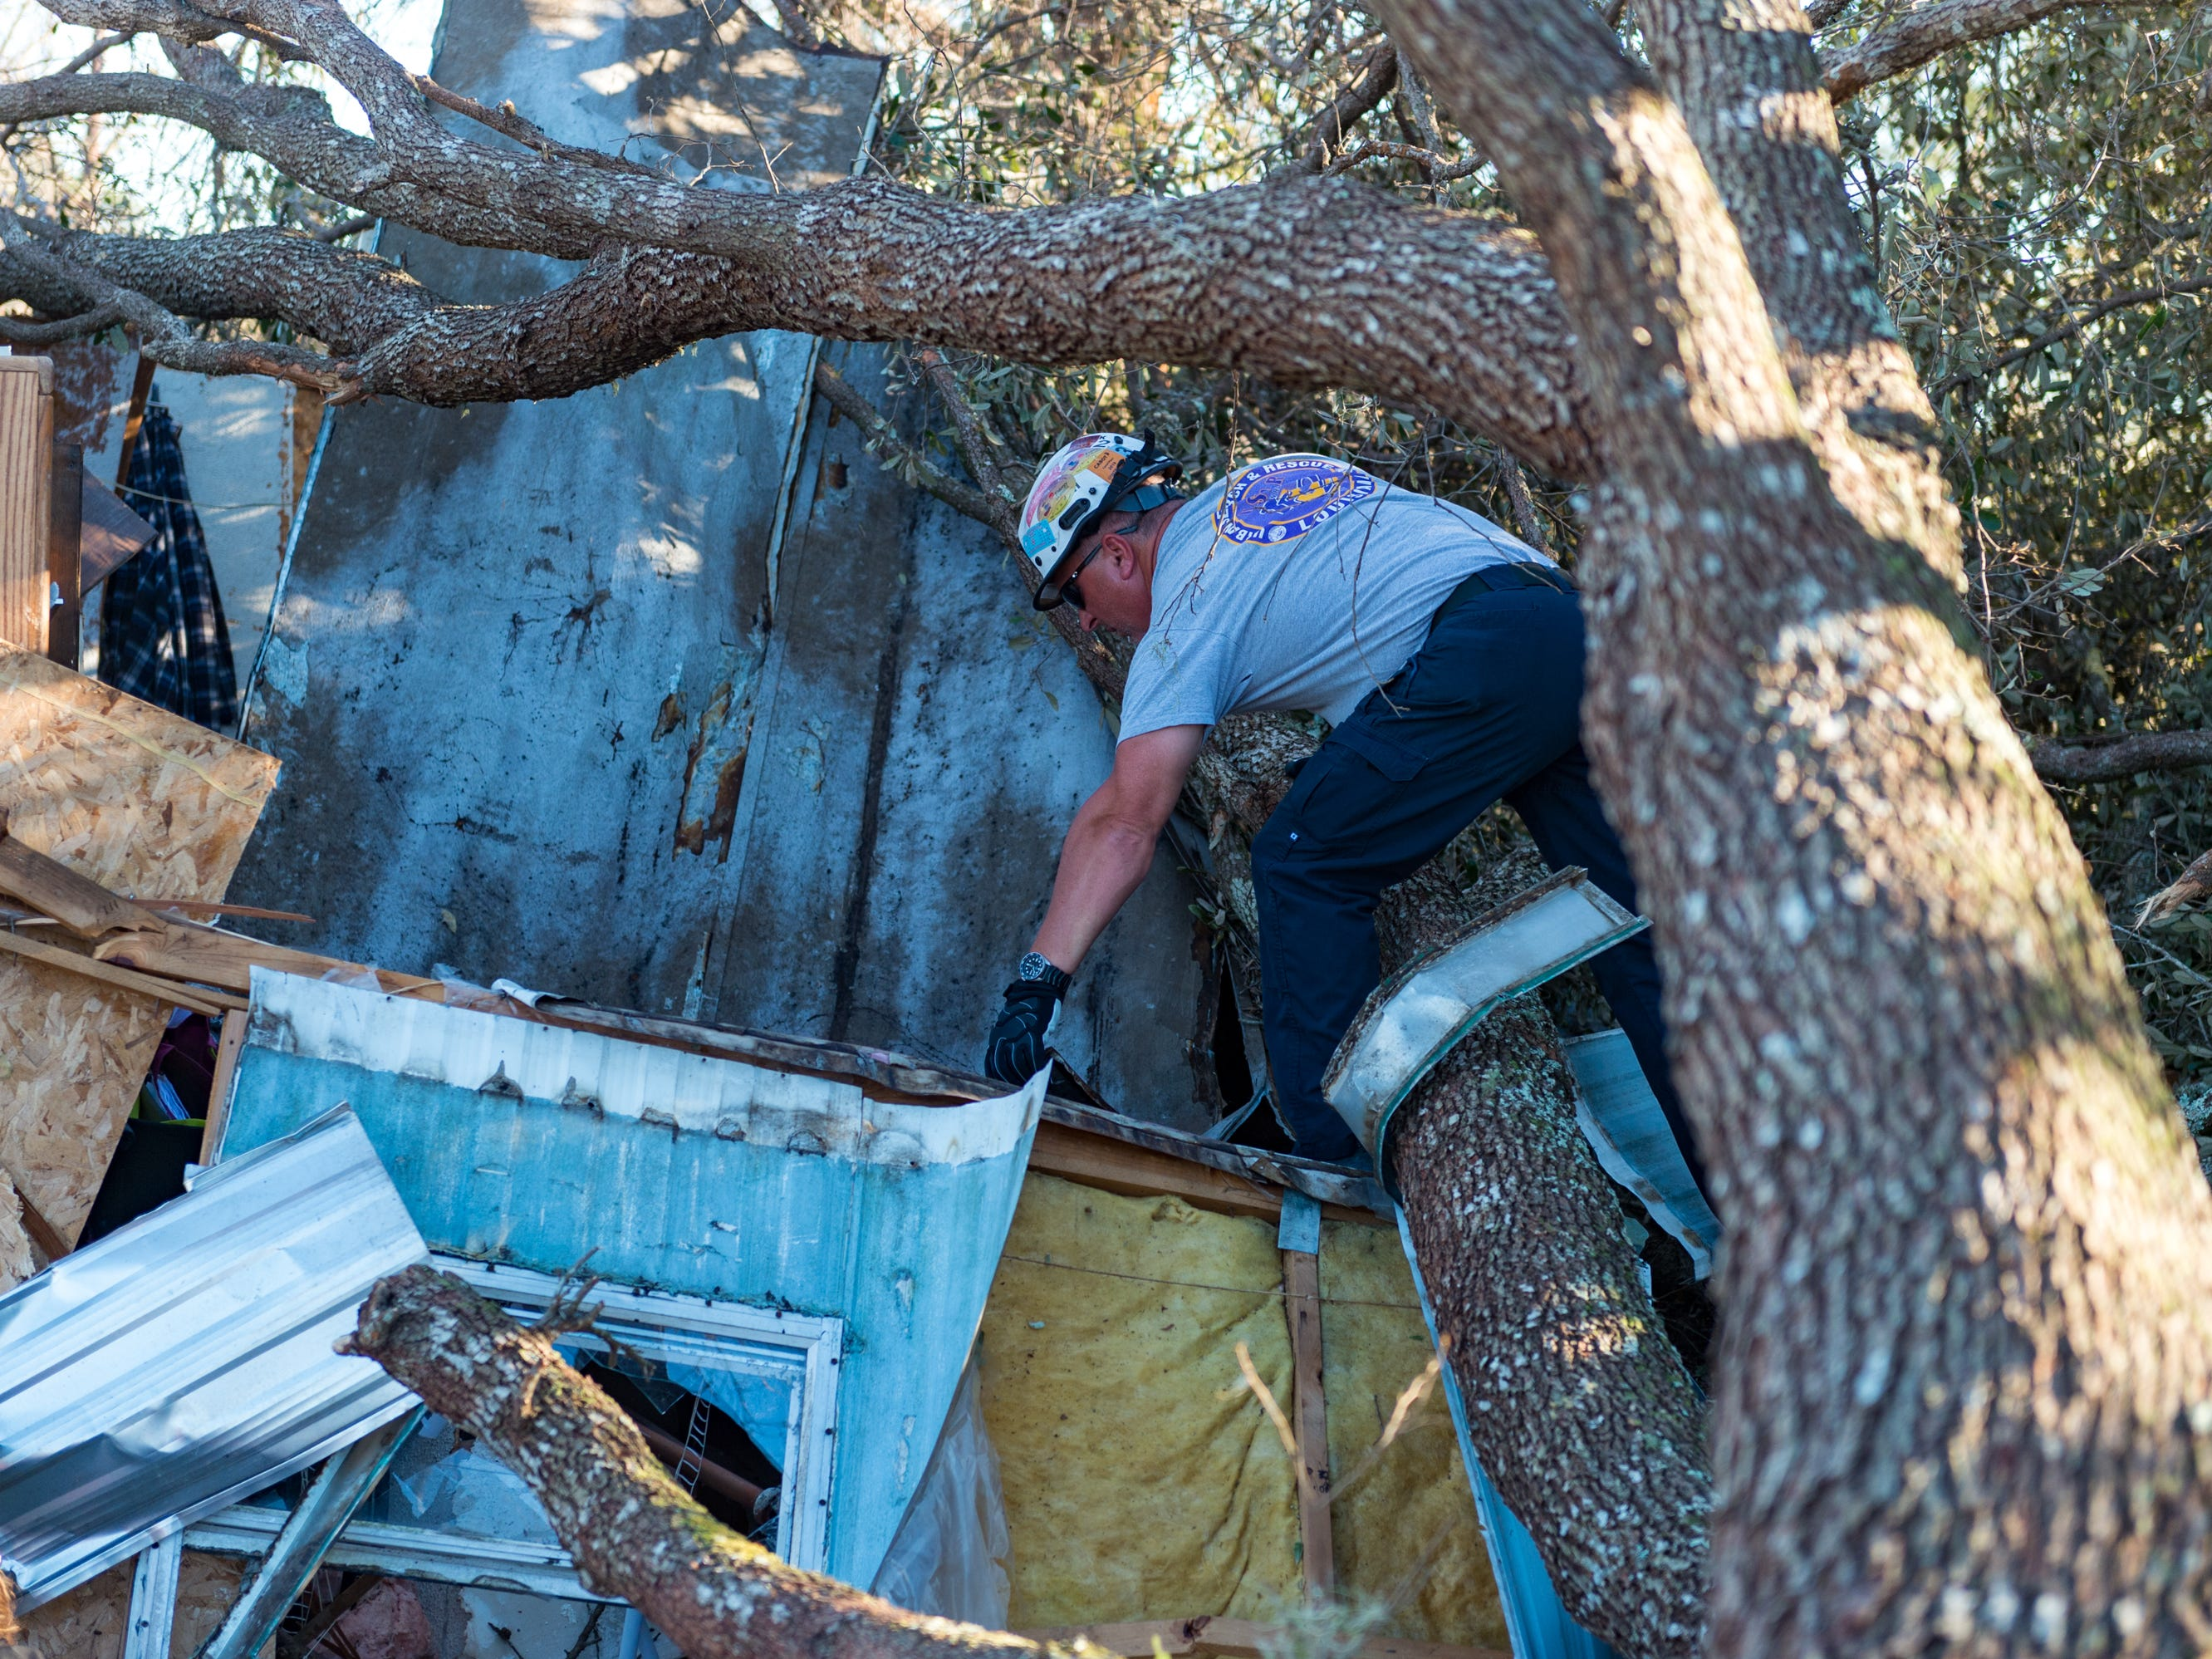 Rescue Tech Jason Graphia from the The Louisiana Urban Search and Rescue Task Force, climbs over debris to search a house that was destroyed by a tree near Panama City in the aftermath of Hurricane Michael, Oct. 13, 2018.